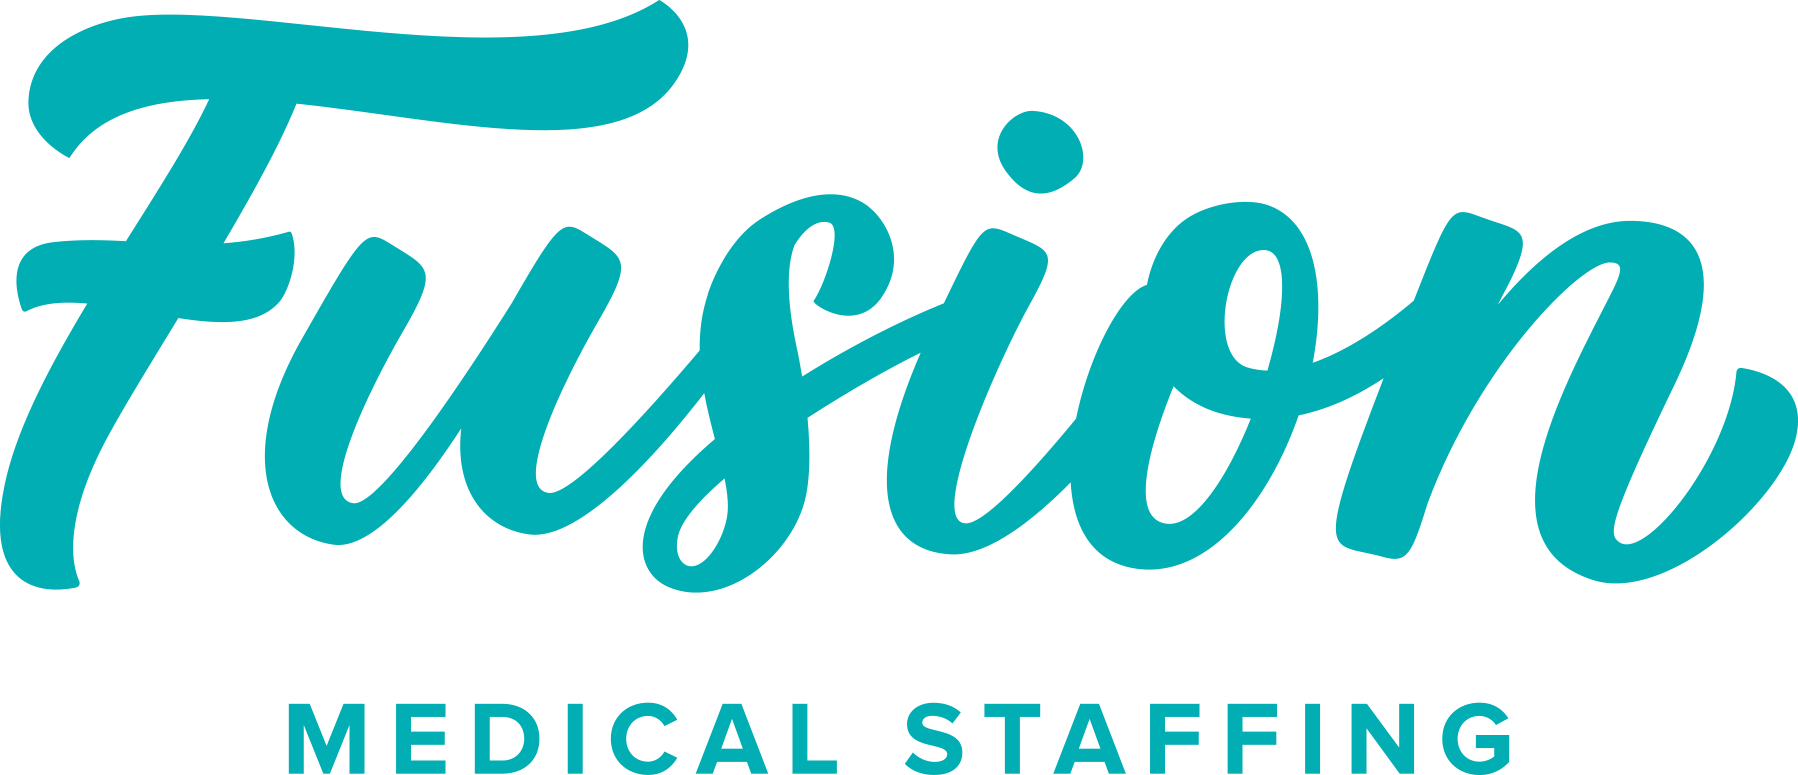 Fusion Medical Staffing Wins ClearlyRated's Best of Staffing Client and Talent Awards